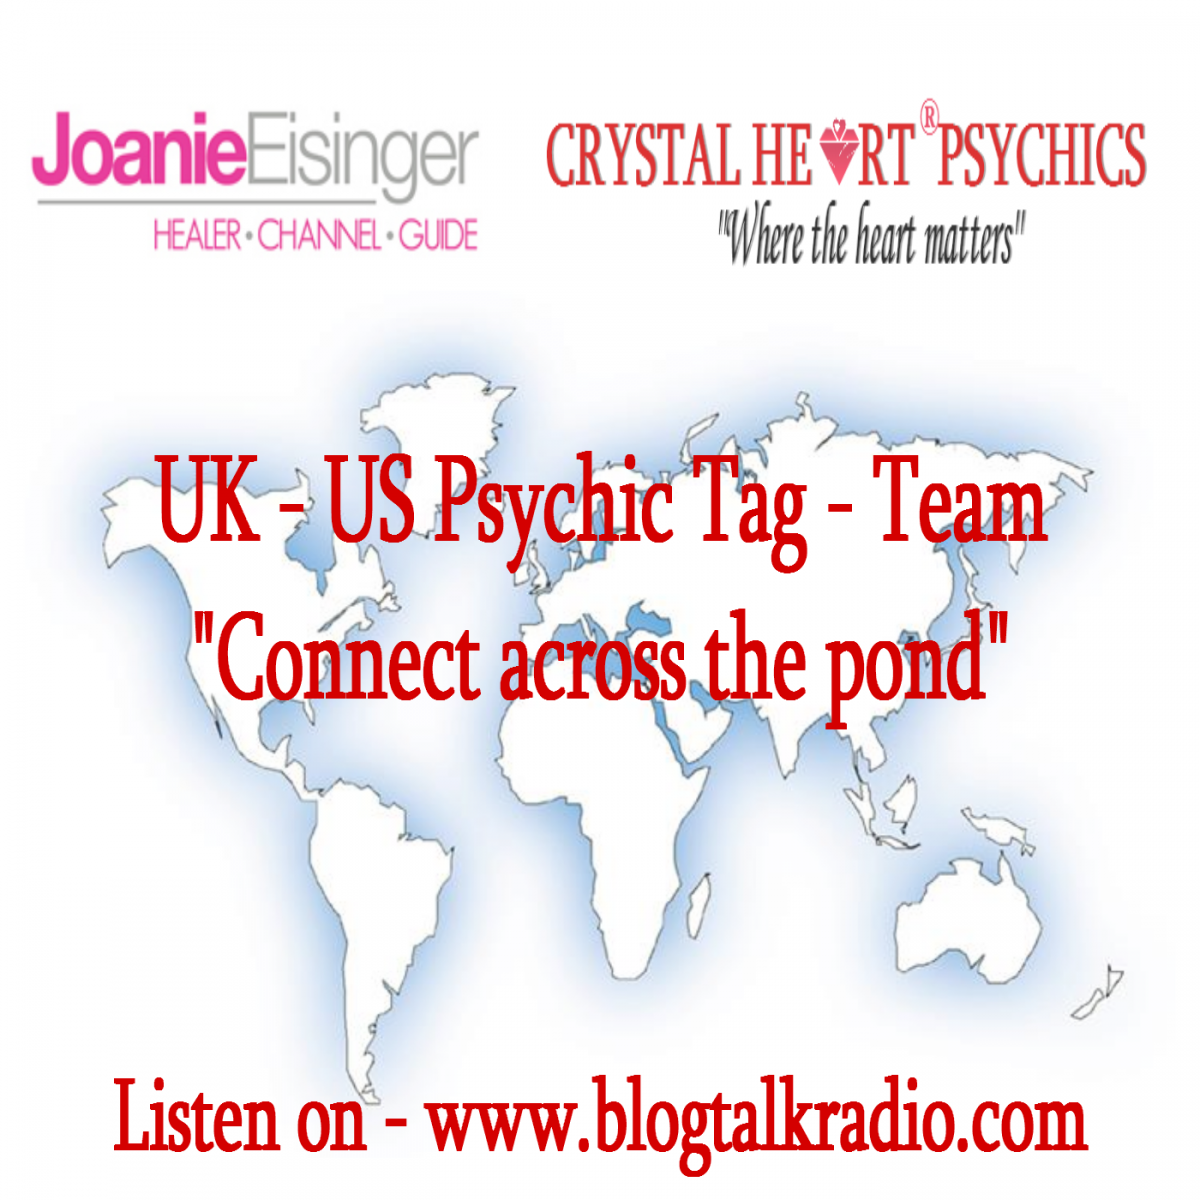 Caroline founder of Crystal Heart Psychics Blog talk radio show